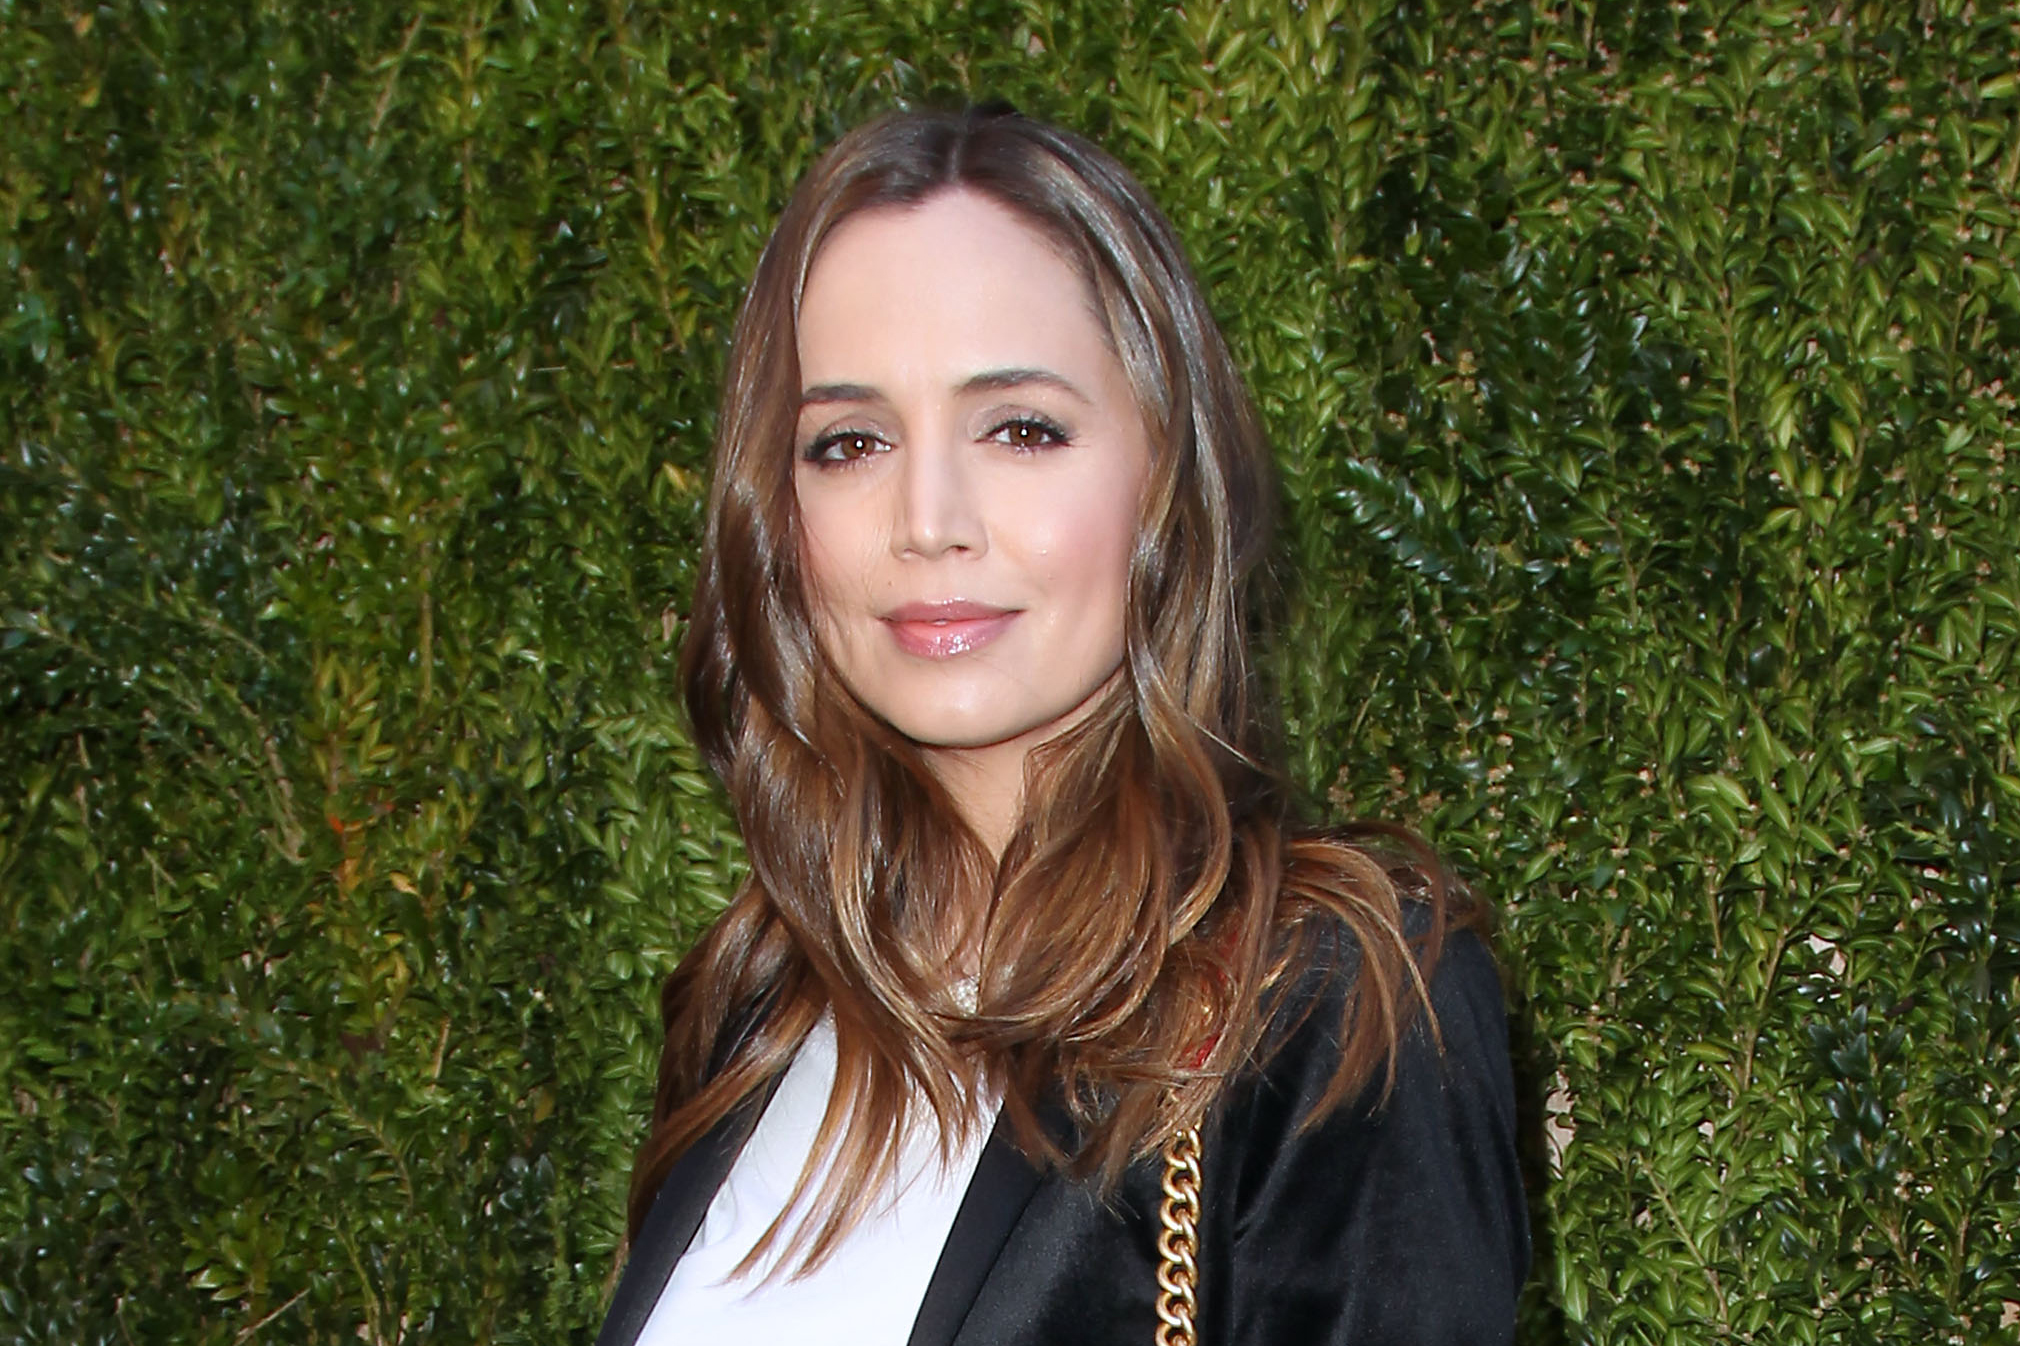 2019 Eliza Dushku nudes (62 foto and video), Ass, Sideboobs, Feet, lingerie 2020